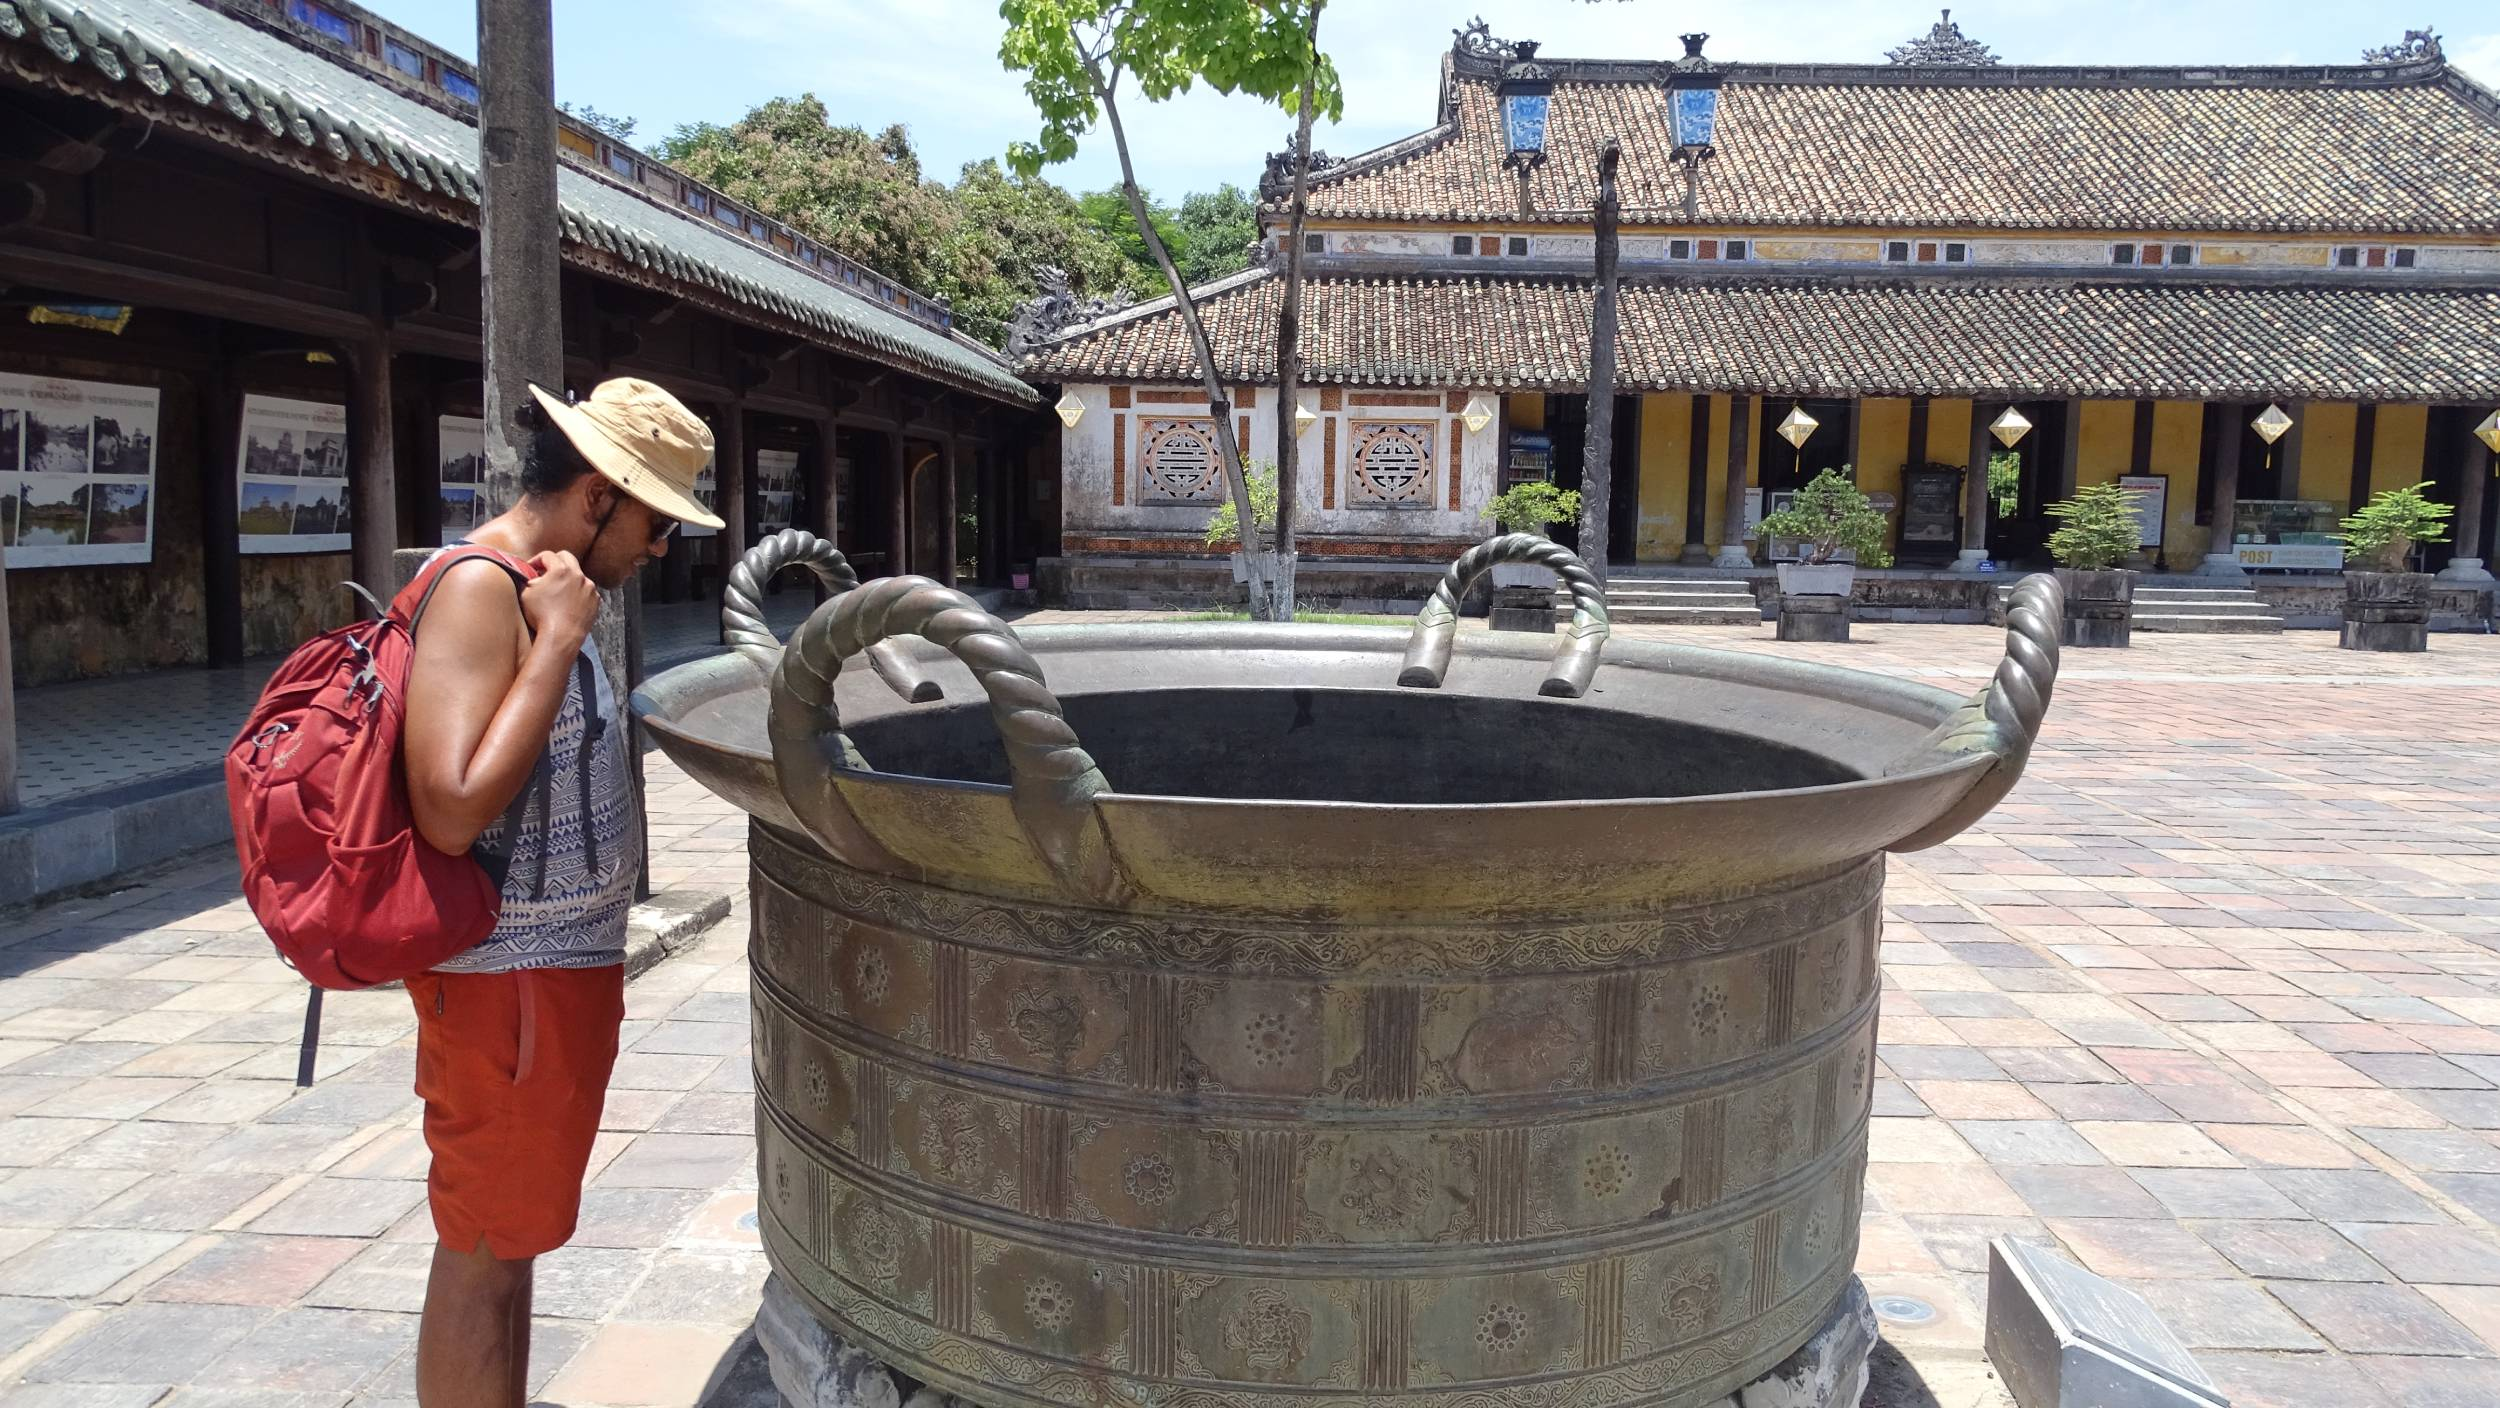 Sayak looking inside a huge bronze cauldron on one of the courtyards of the Imperial City in Hue